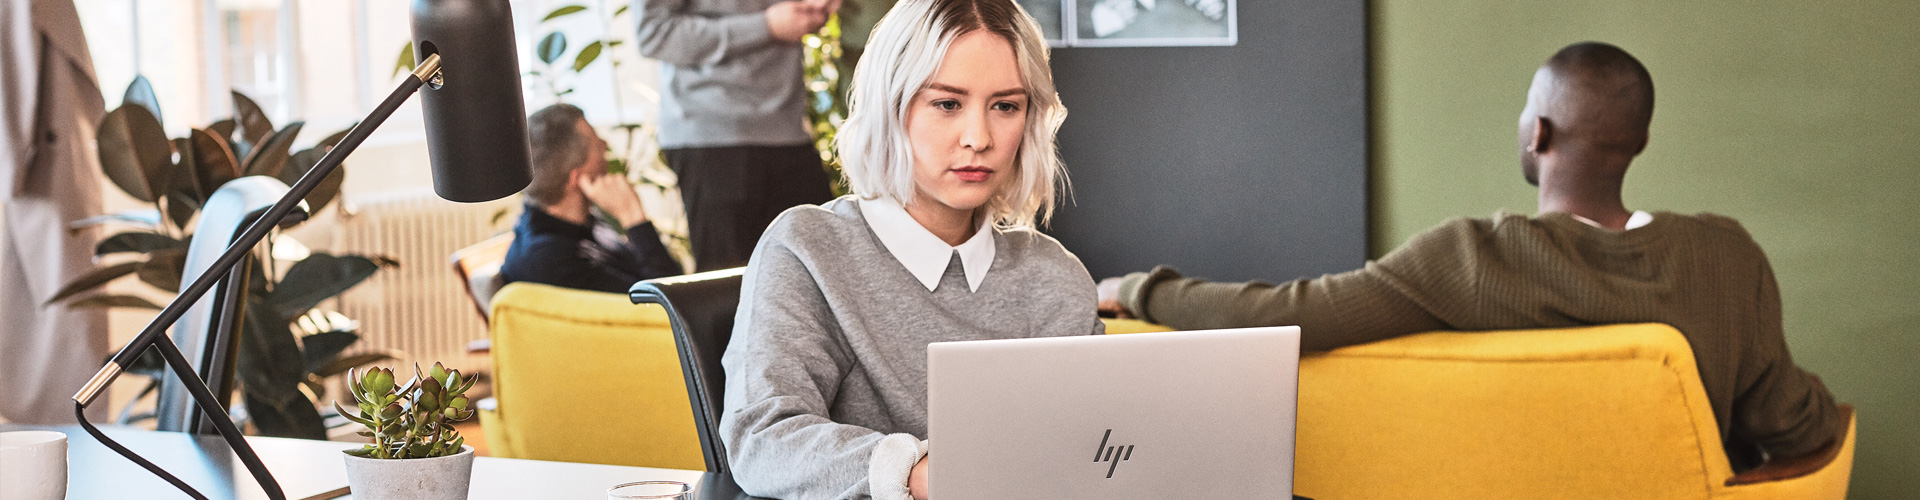 A woman on a laptop in an office setting